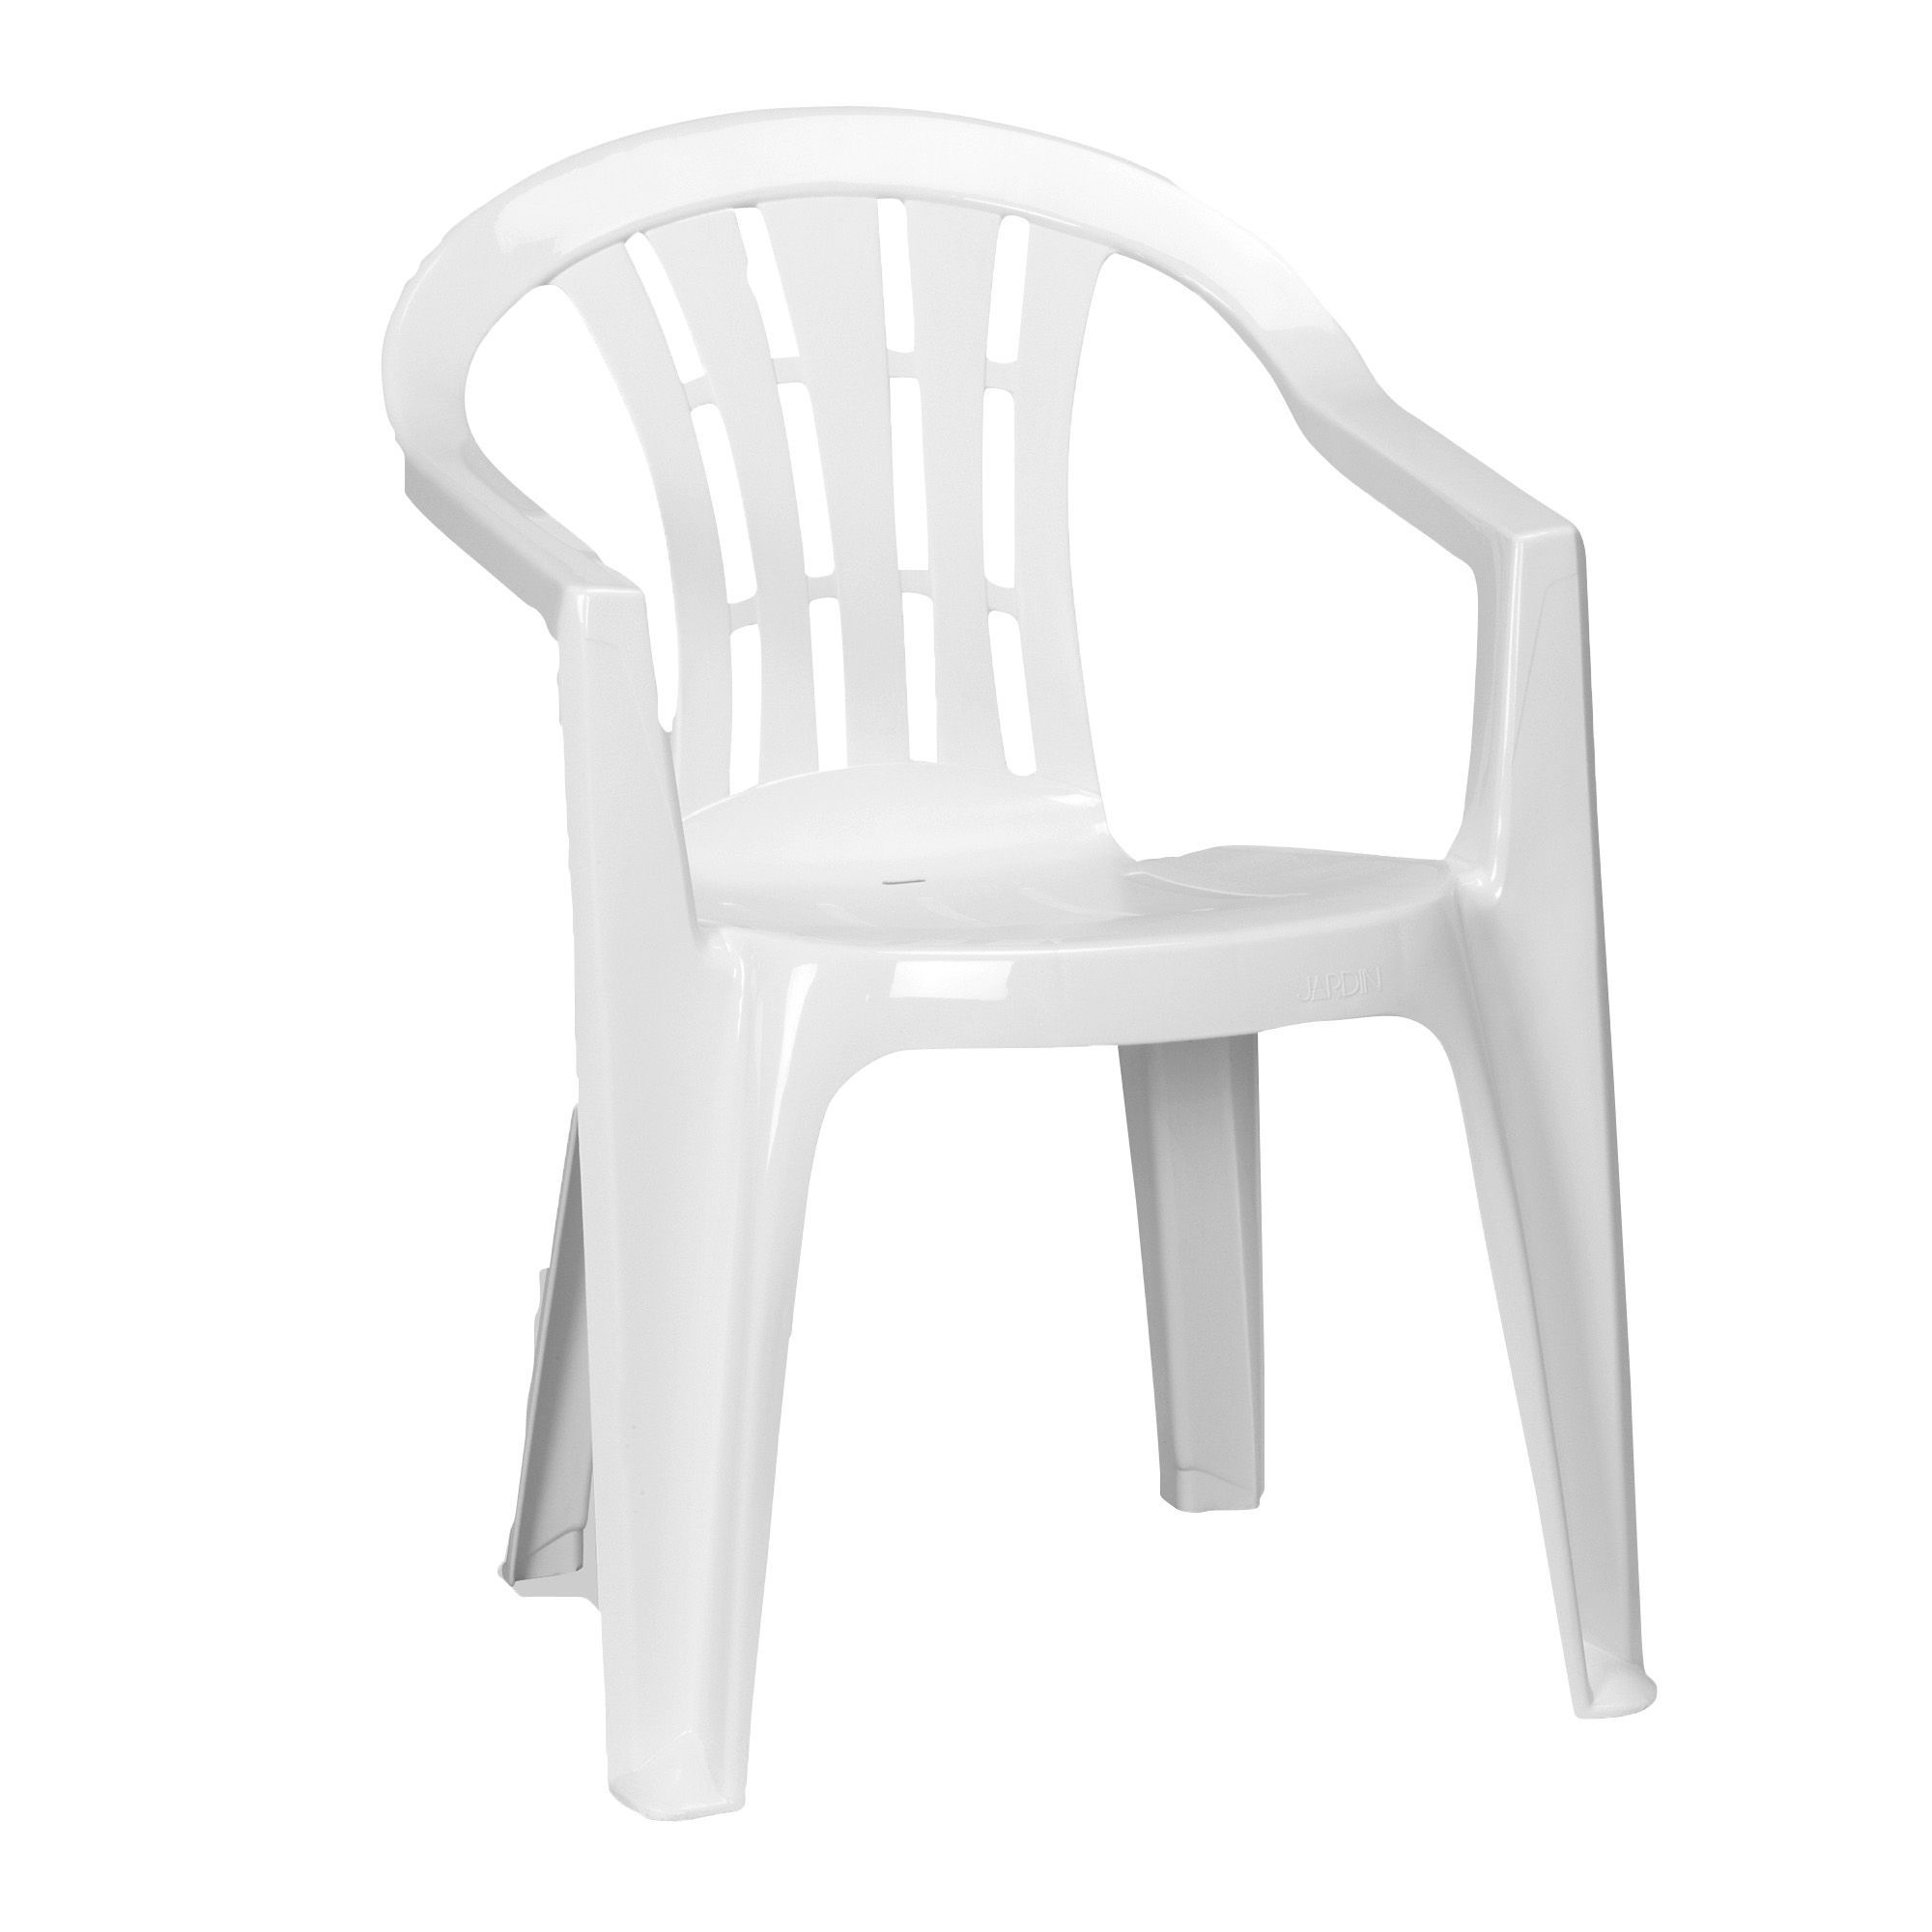 Cuba Plastic Chair Departments Diy At B Q - B And Q Garden Furniture Clearance Sale